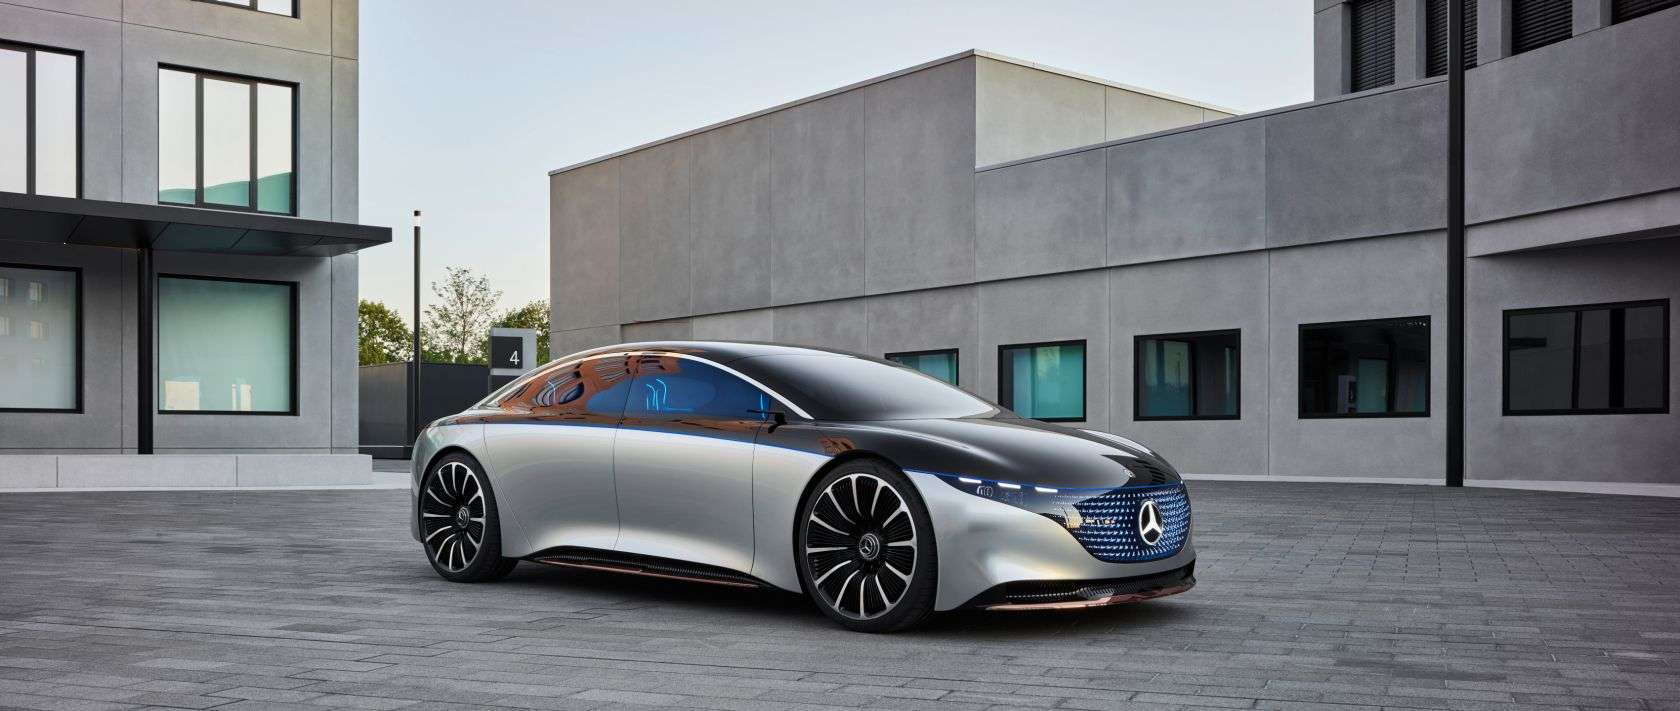 Mercedes-Benz EQS Concept: The Future of S-Class is ...